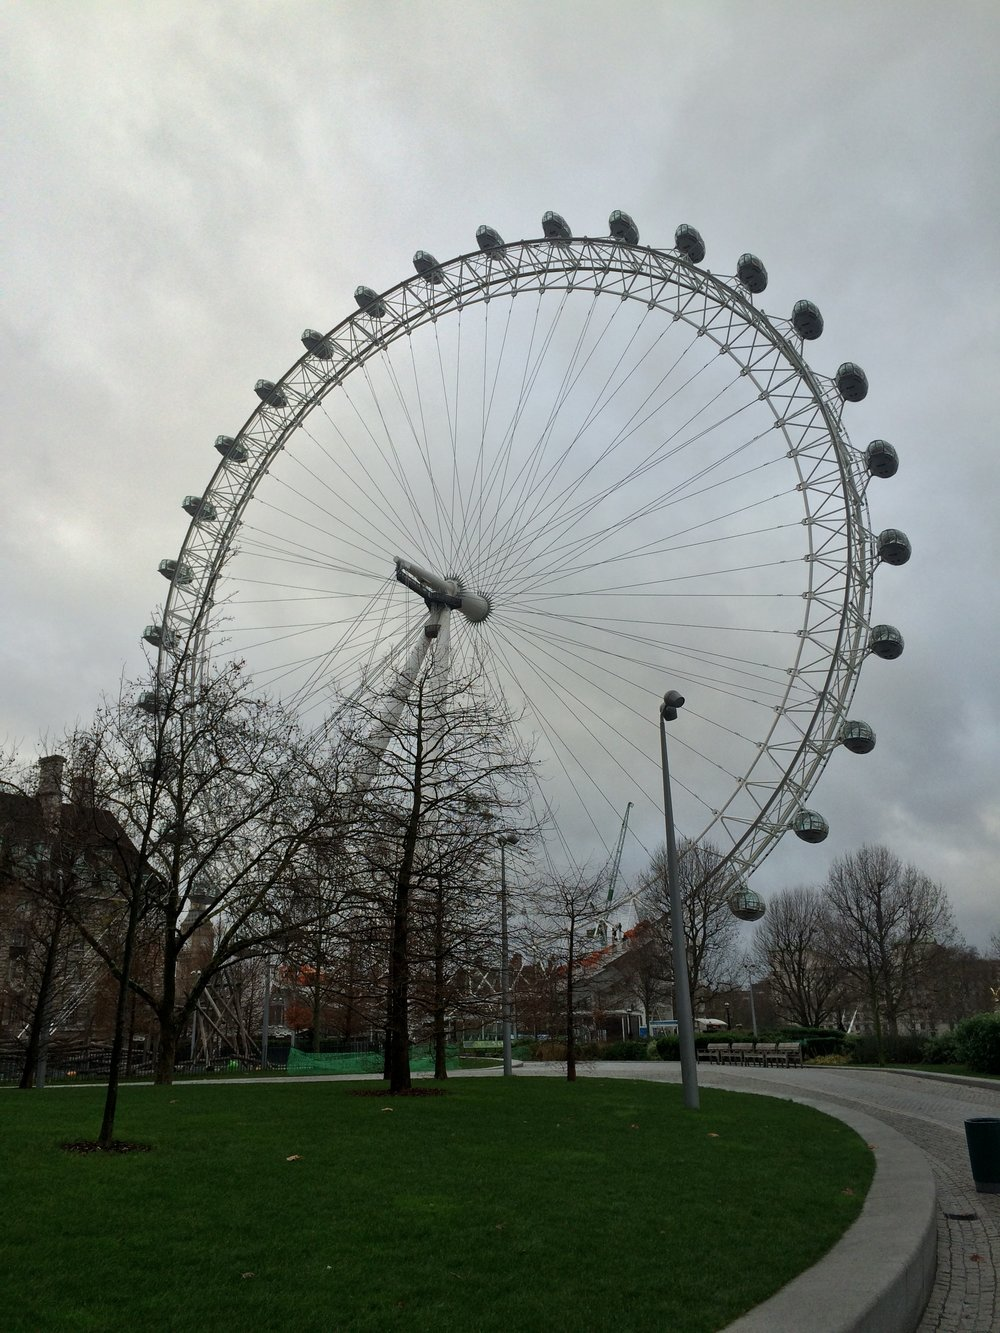 With thirty-two capsules adoring a 443 foot high cantilevered wheel, the London Eye is a modern iconic spot of London.